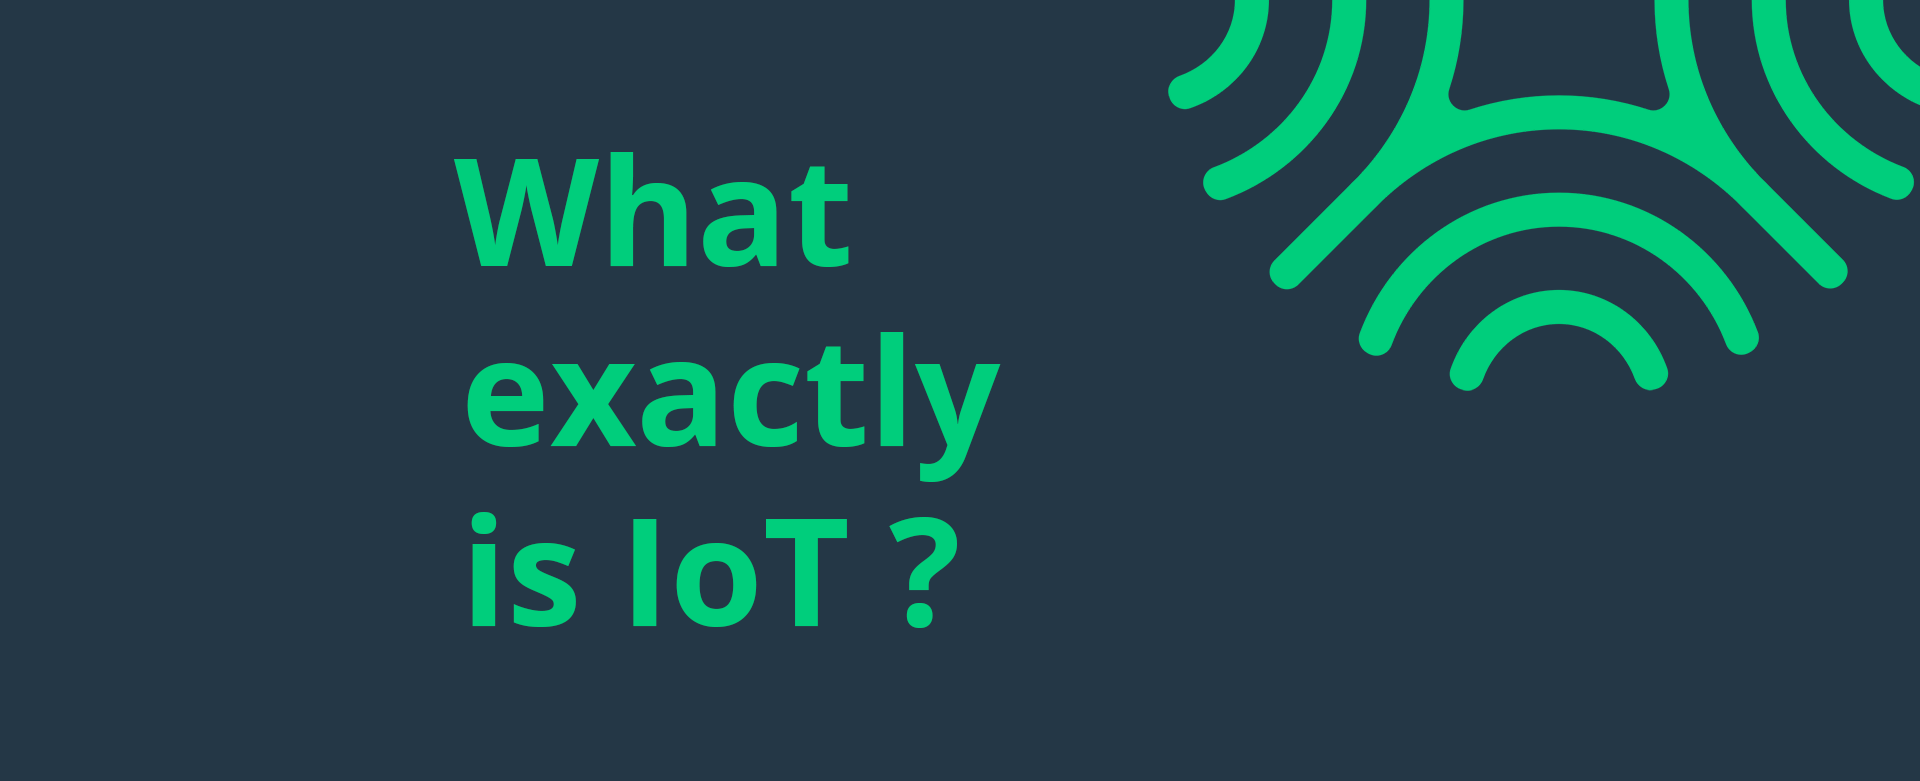 What exactly is IoT